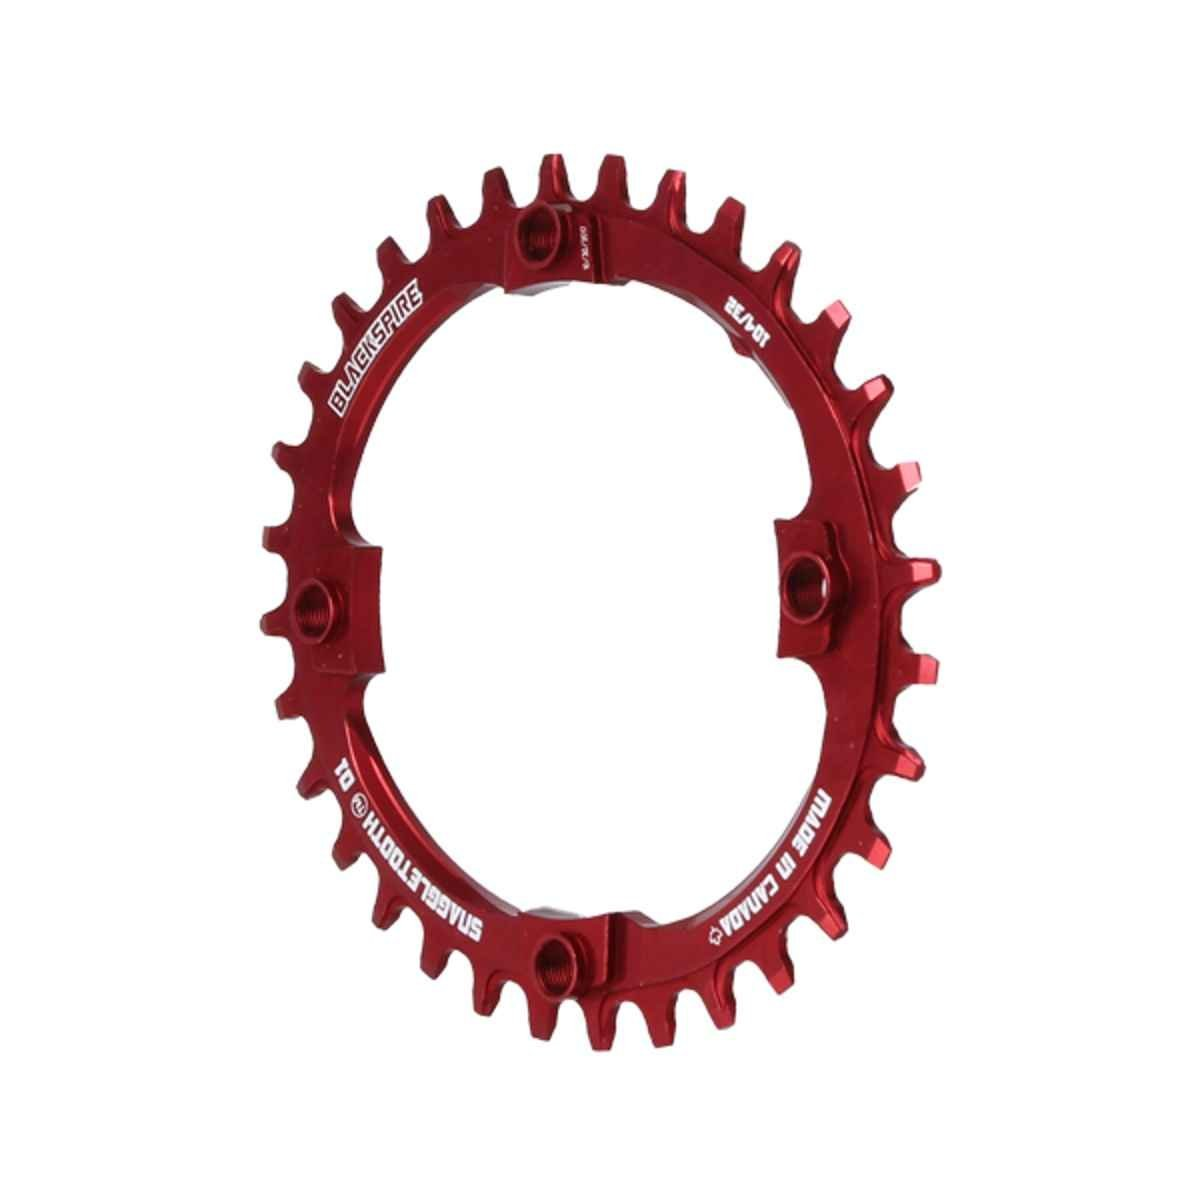 Blackspire Snaggletooth 104BCD Oval Nw Ring, 32T - Red - OV10432R